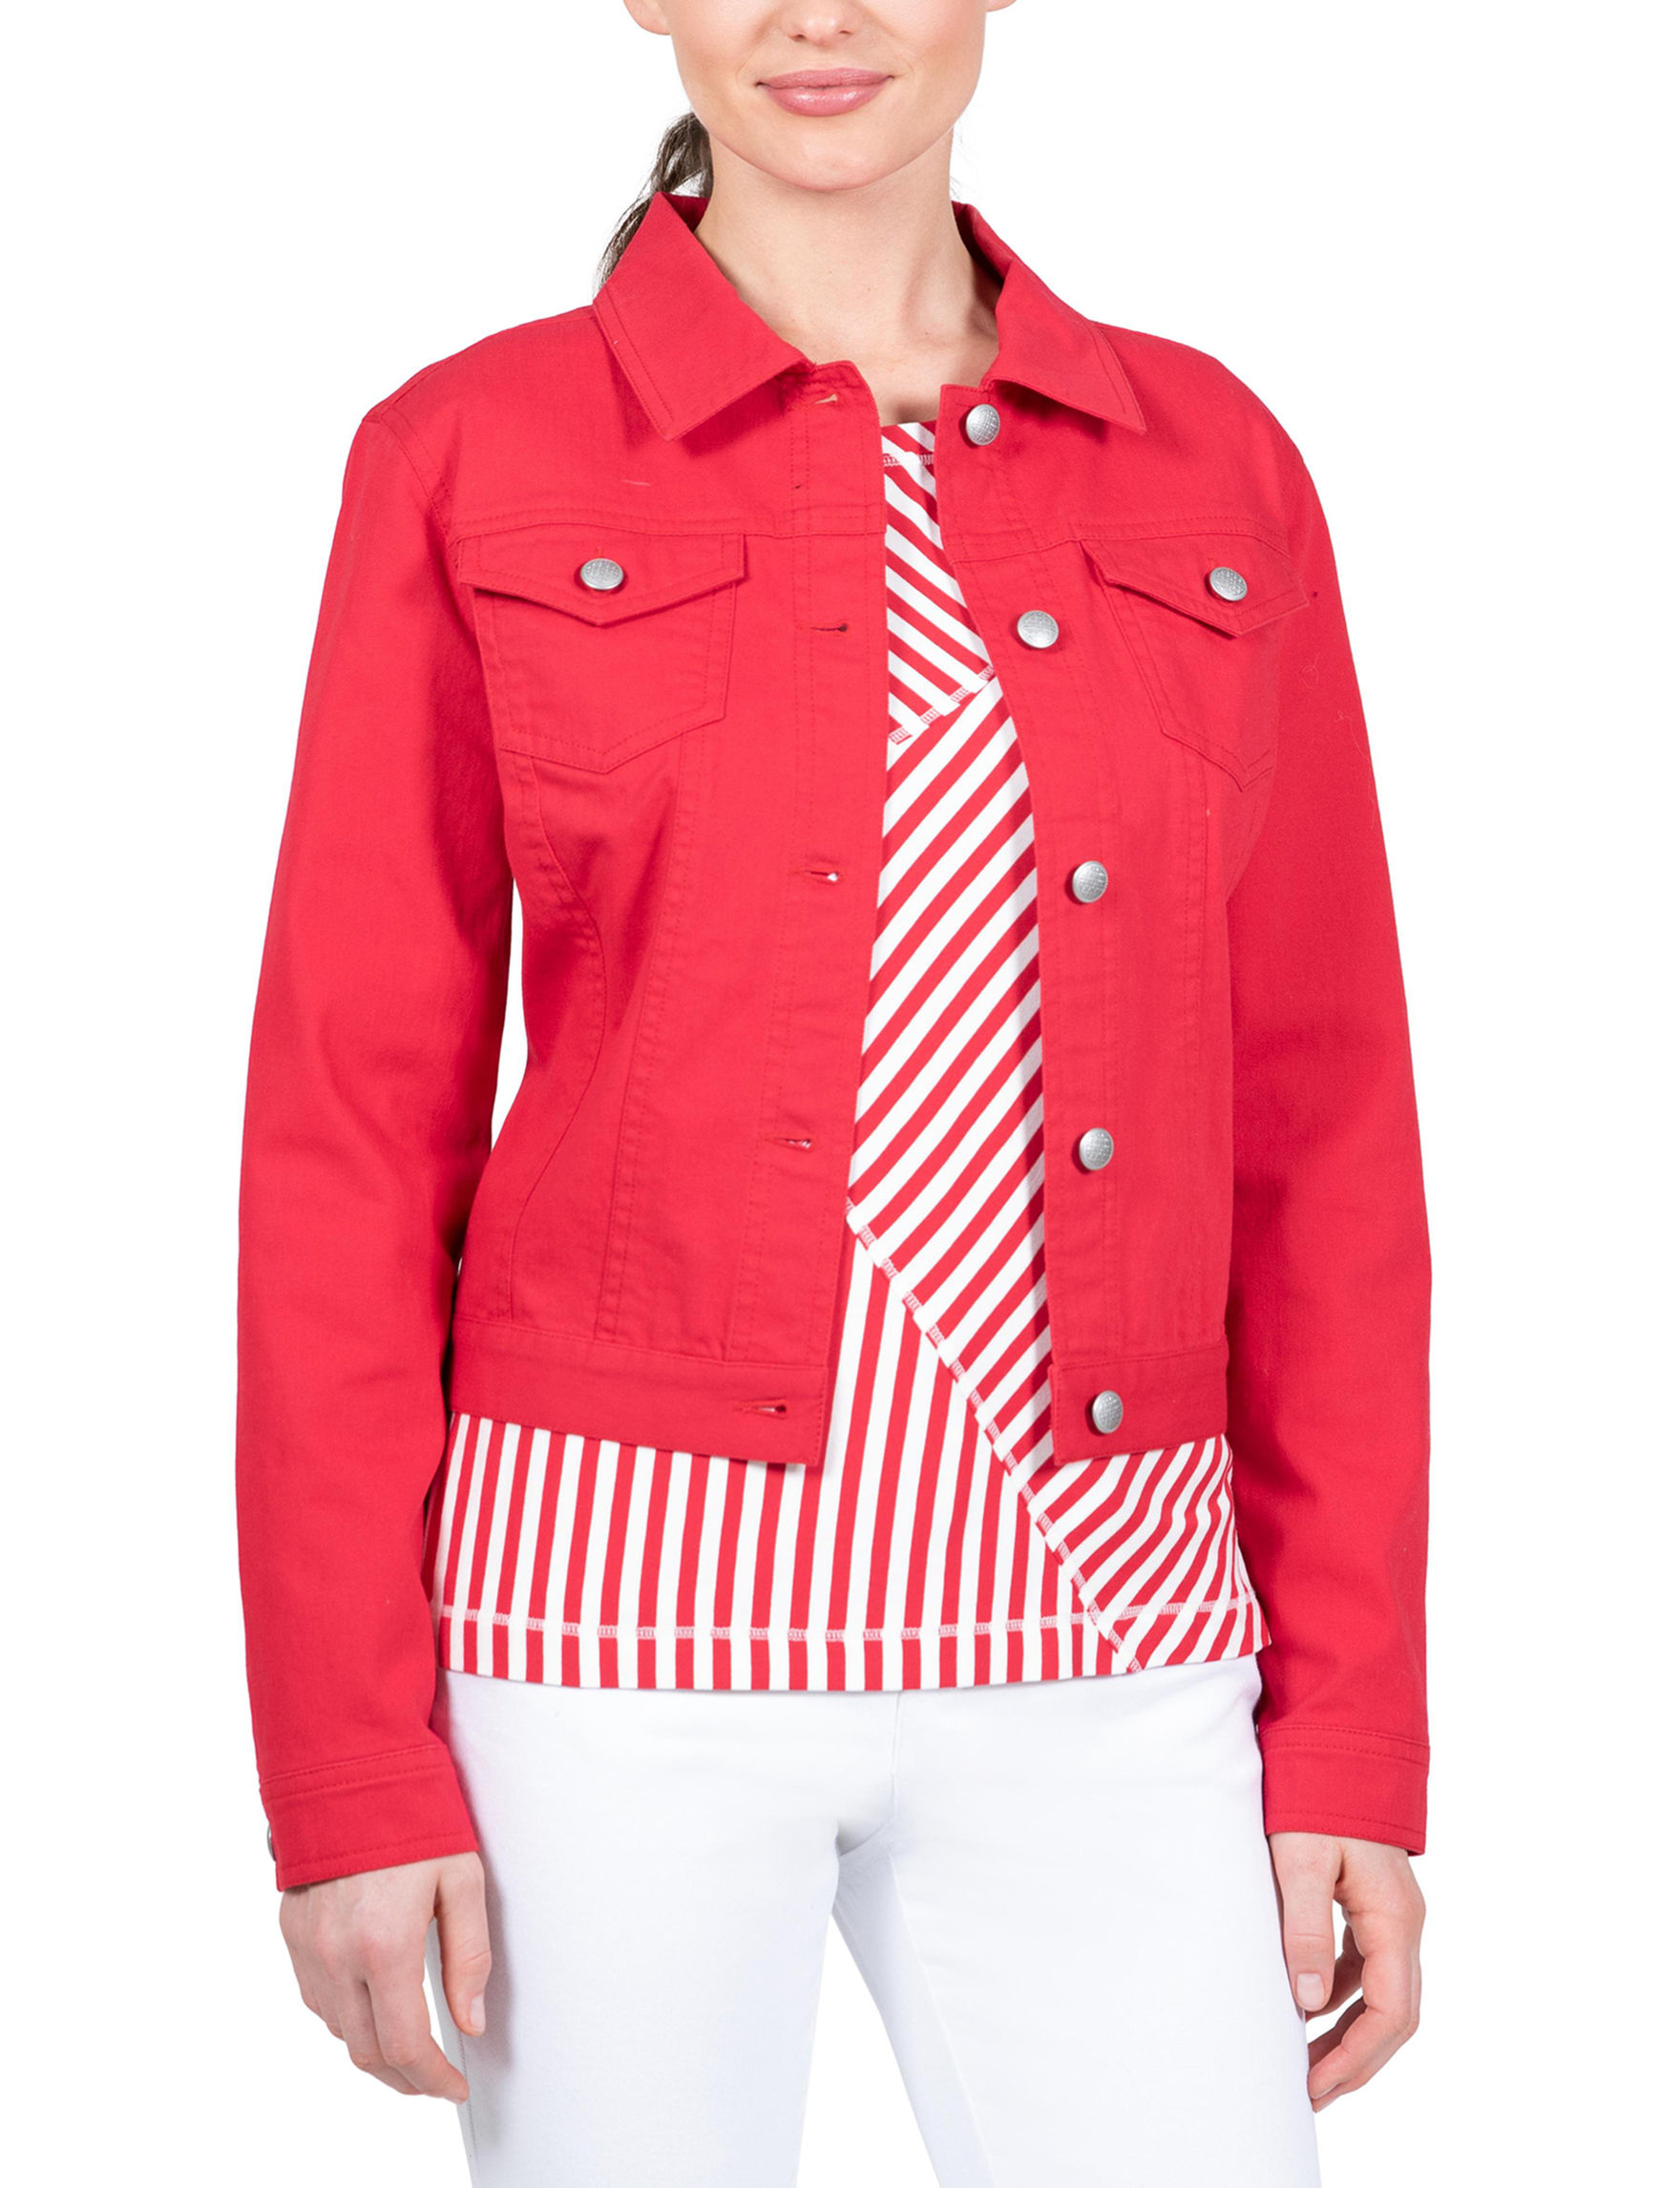 Skyes The Limit Red Lightweight Jackets & Blazers